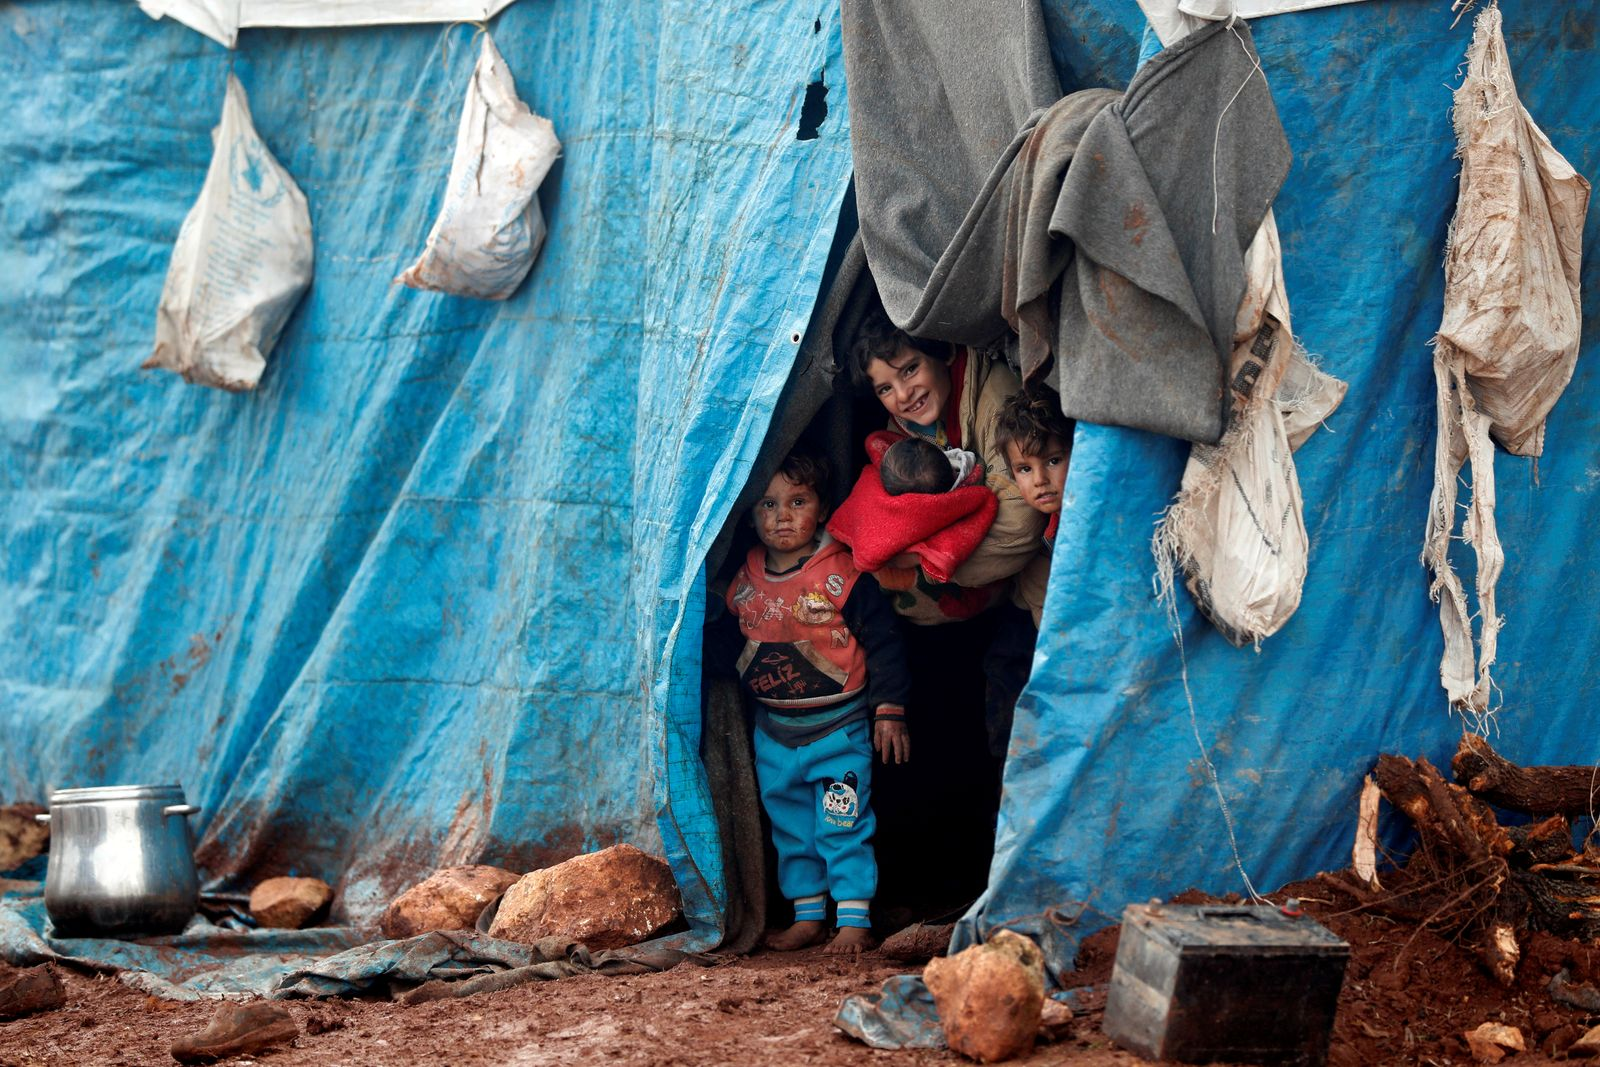 Displaced Syrian children look out from their tents at Kelbit refugee camp in Idlib province